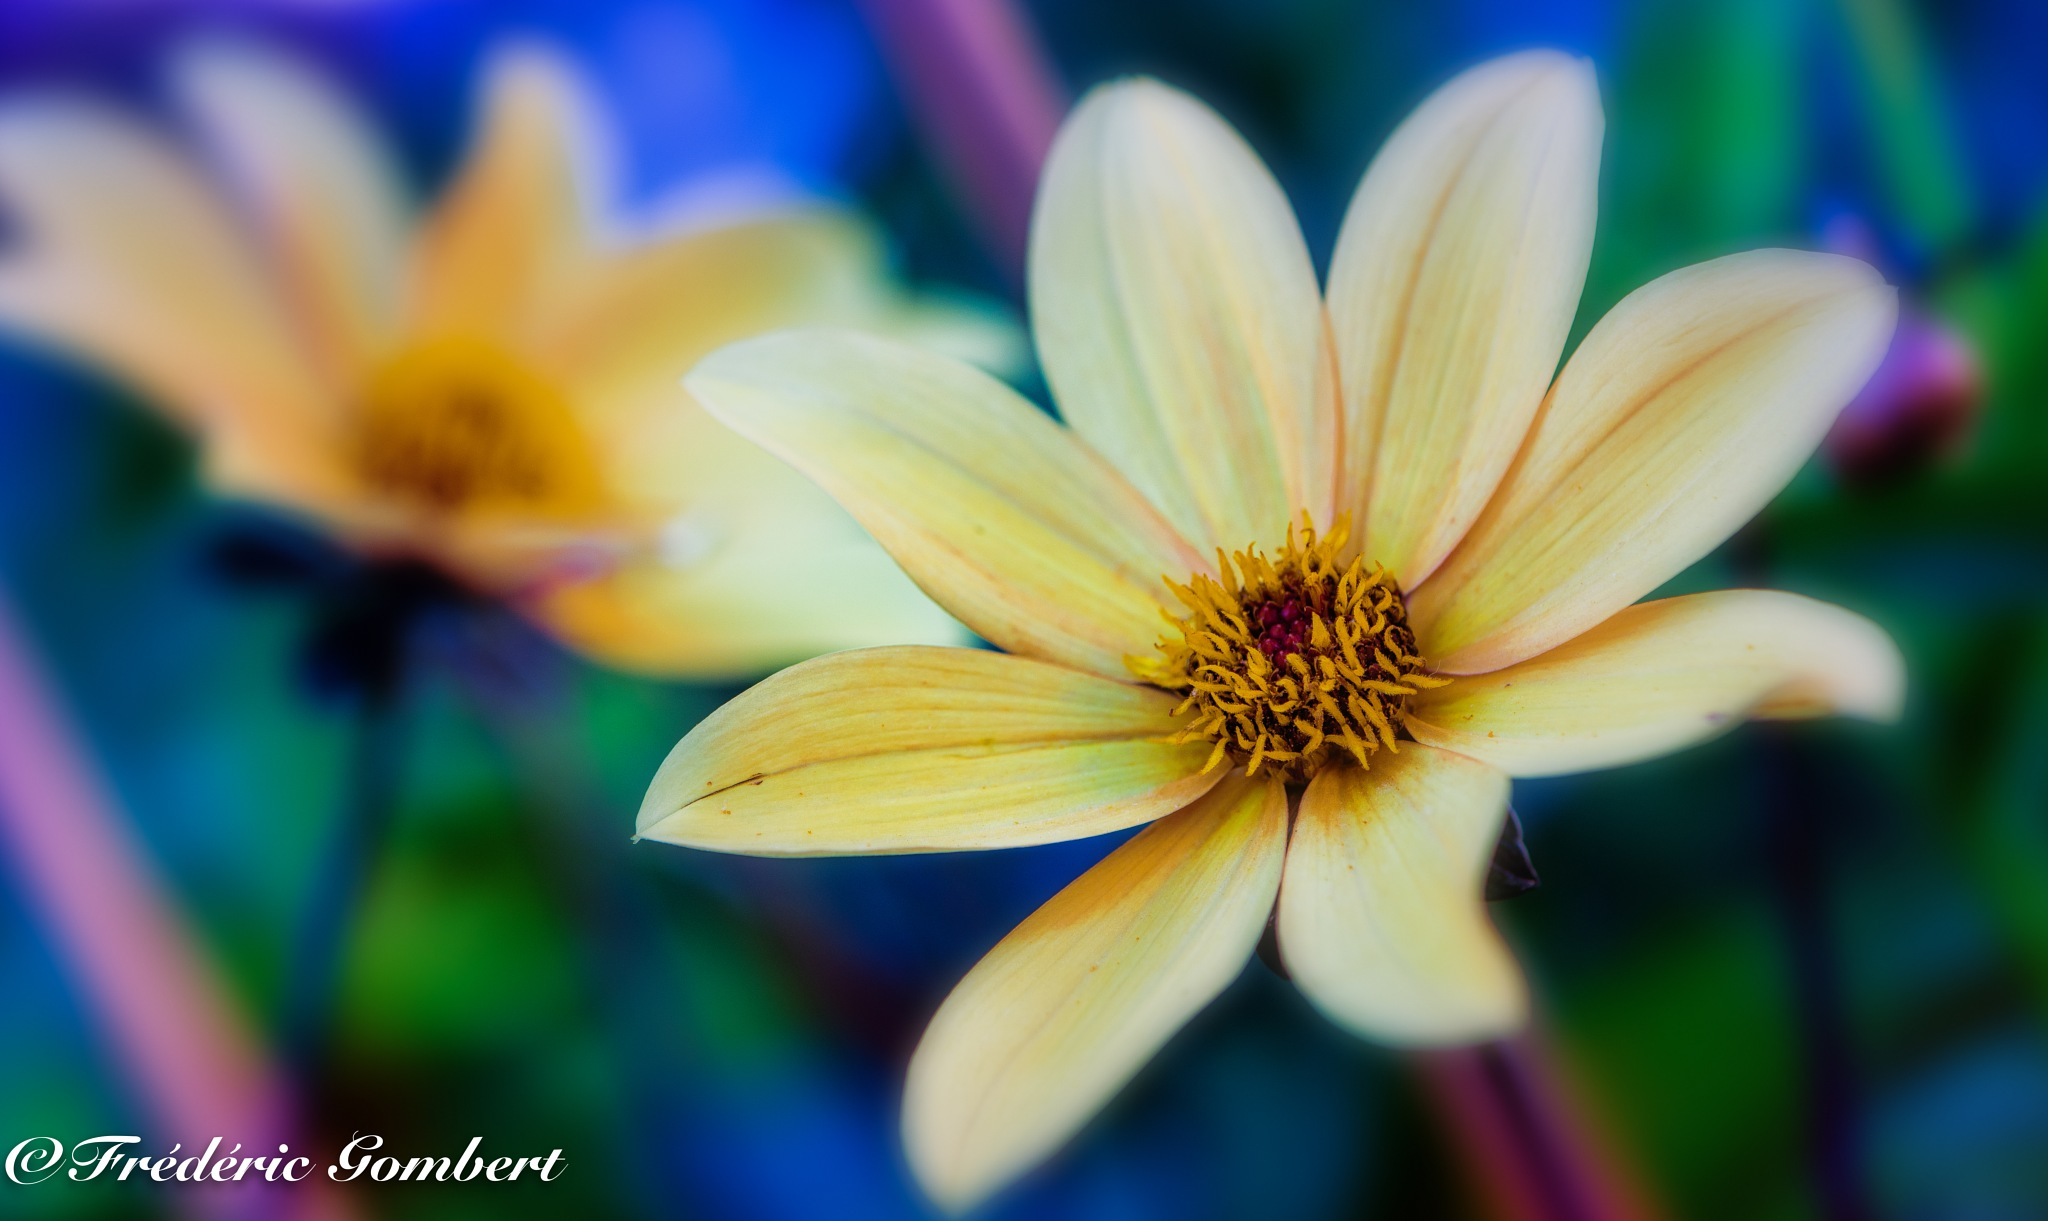 the Summer world by Frederic Gombert